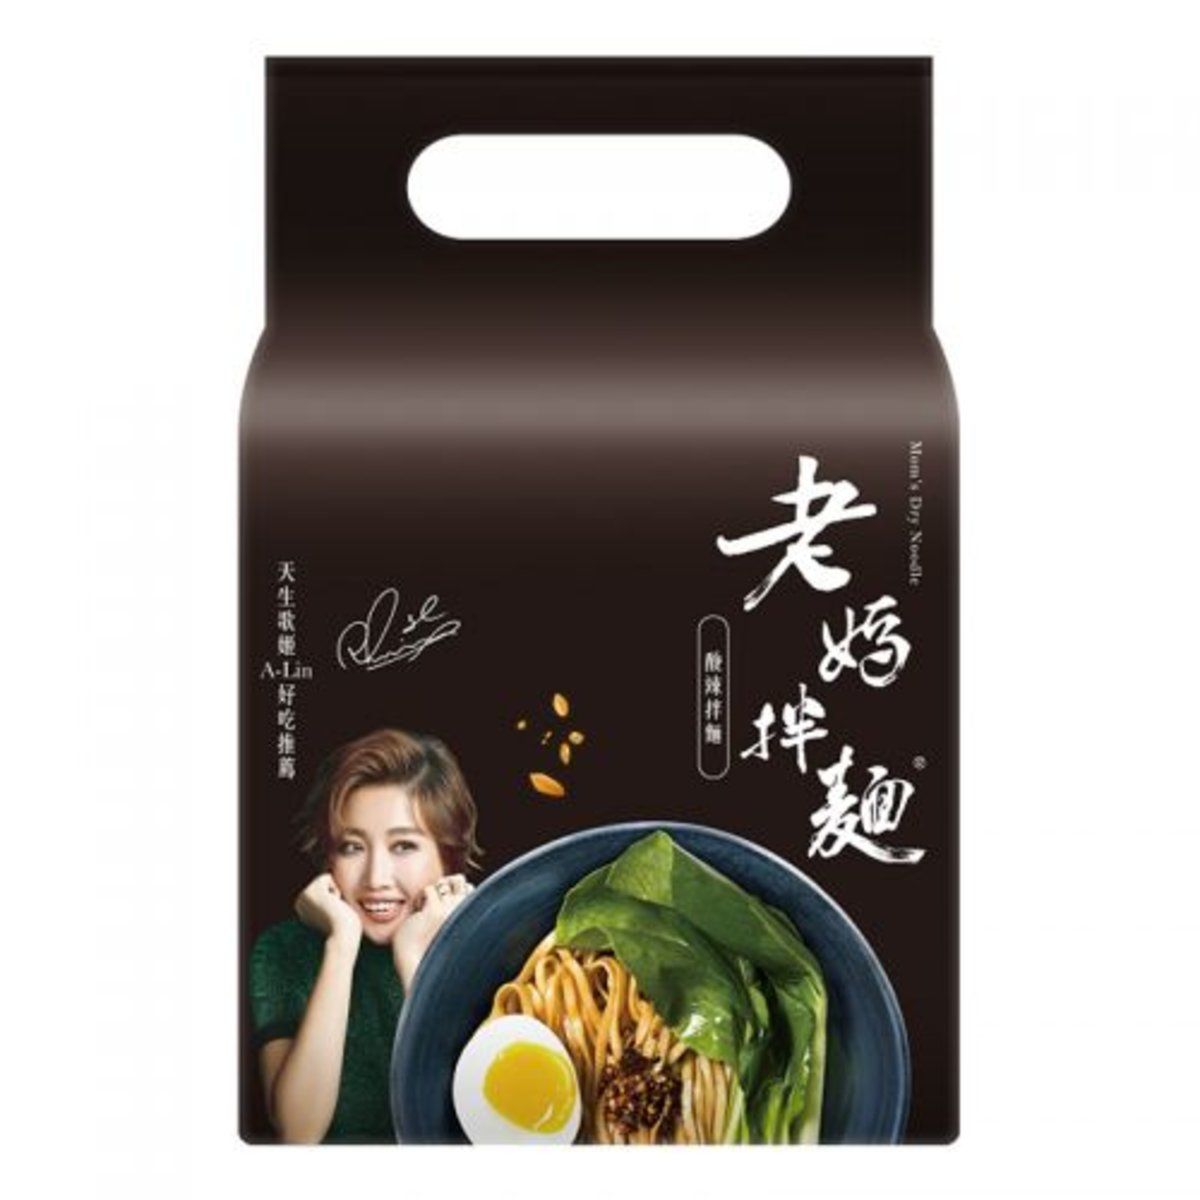 Mom's Dry Noodle Sour & Spicy Flavour 536g - 134g x 4packs for 1 bag  (4717011150612)